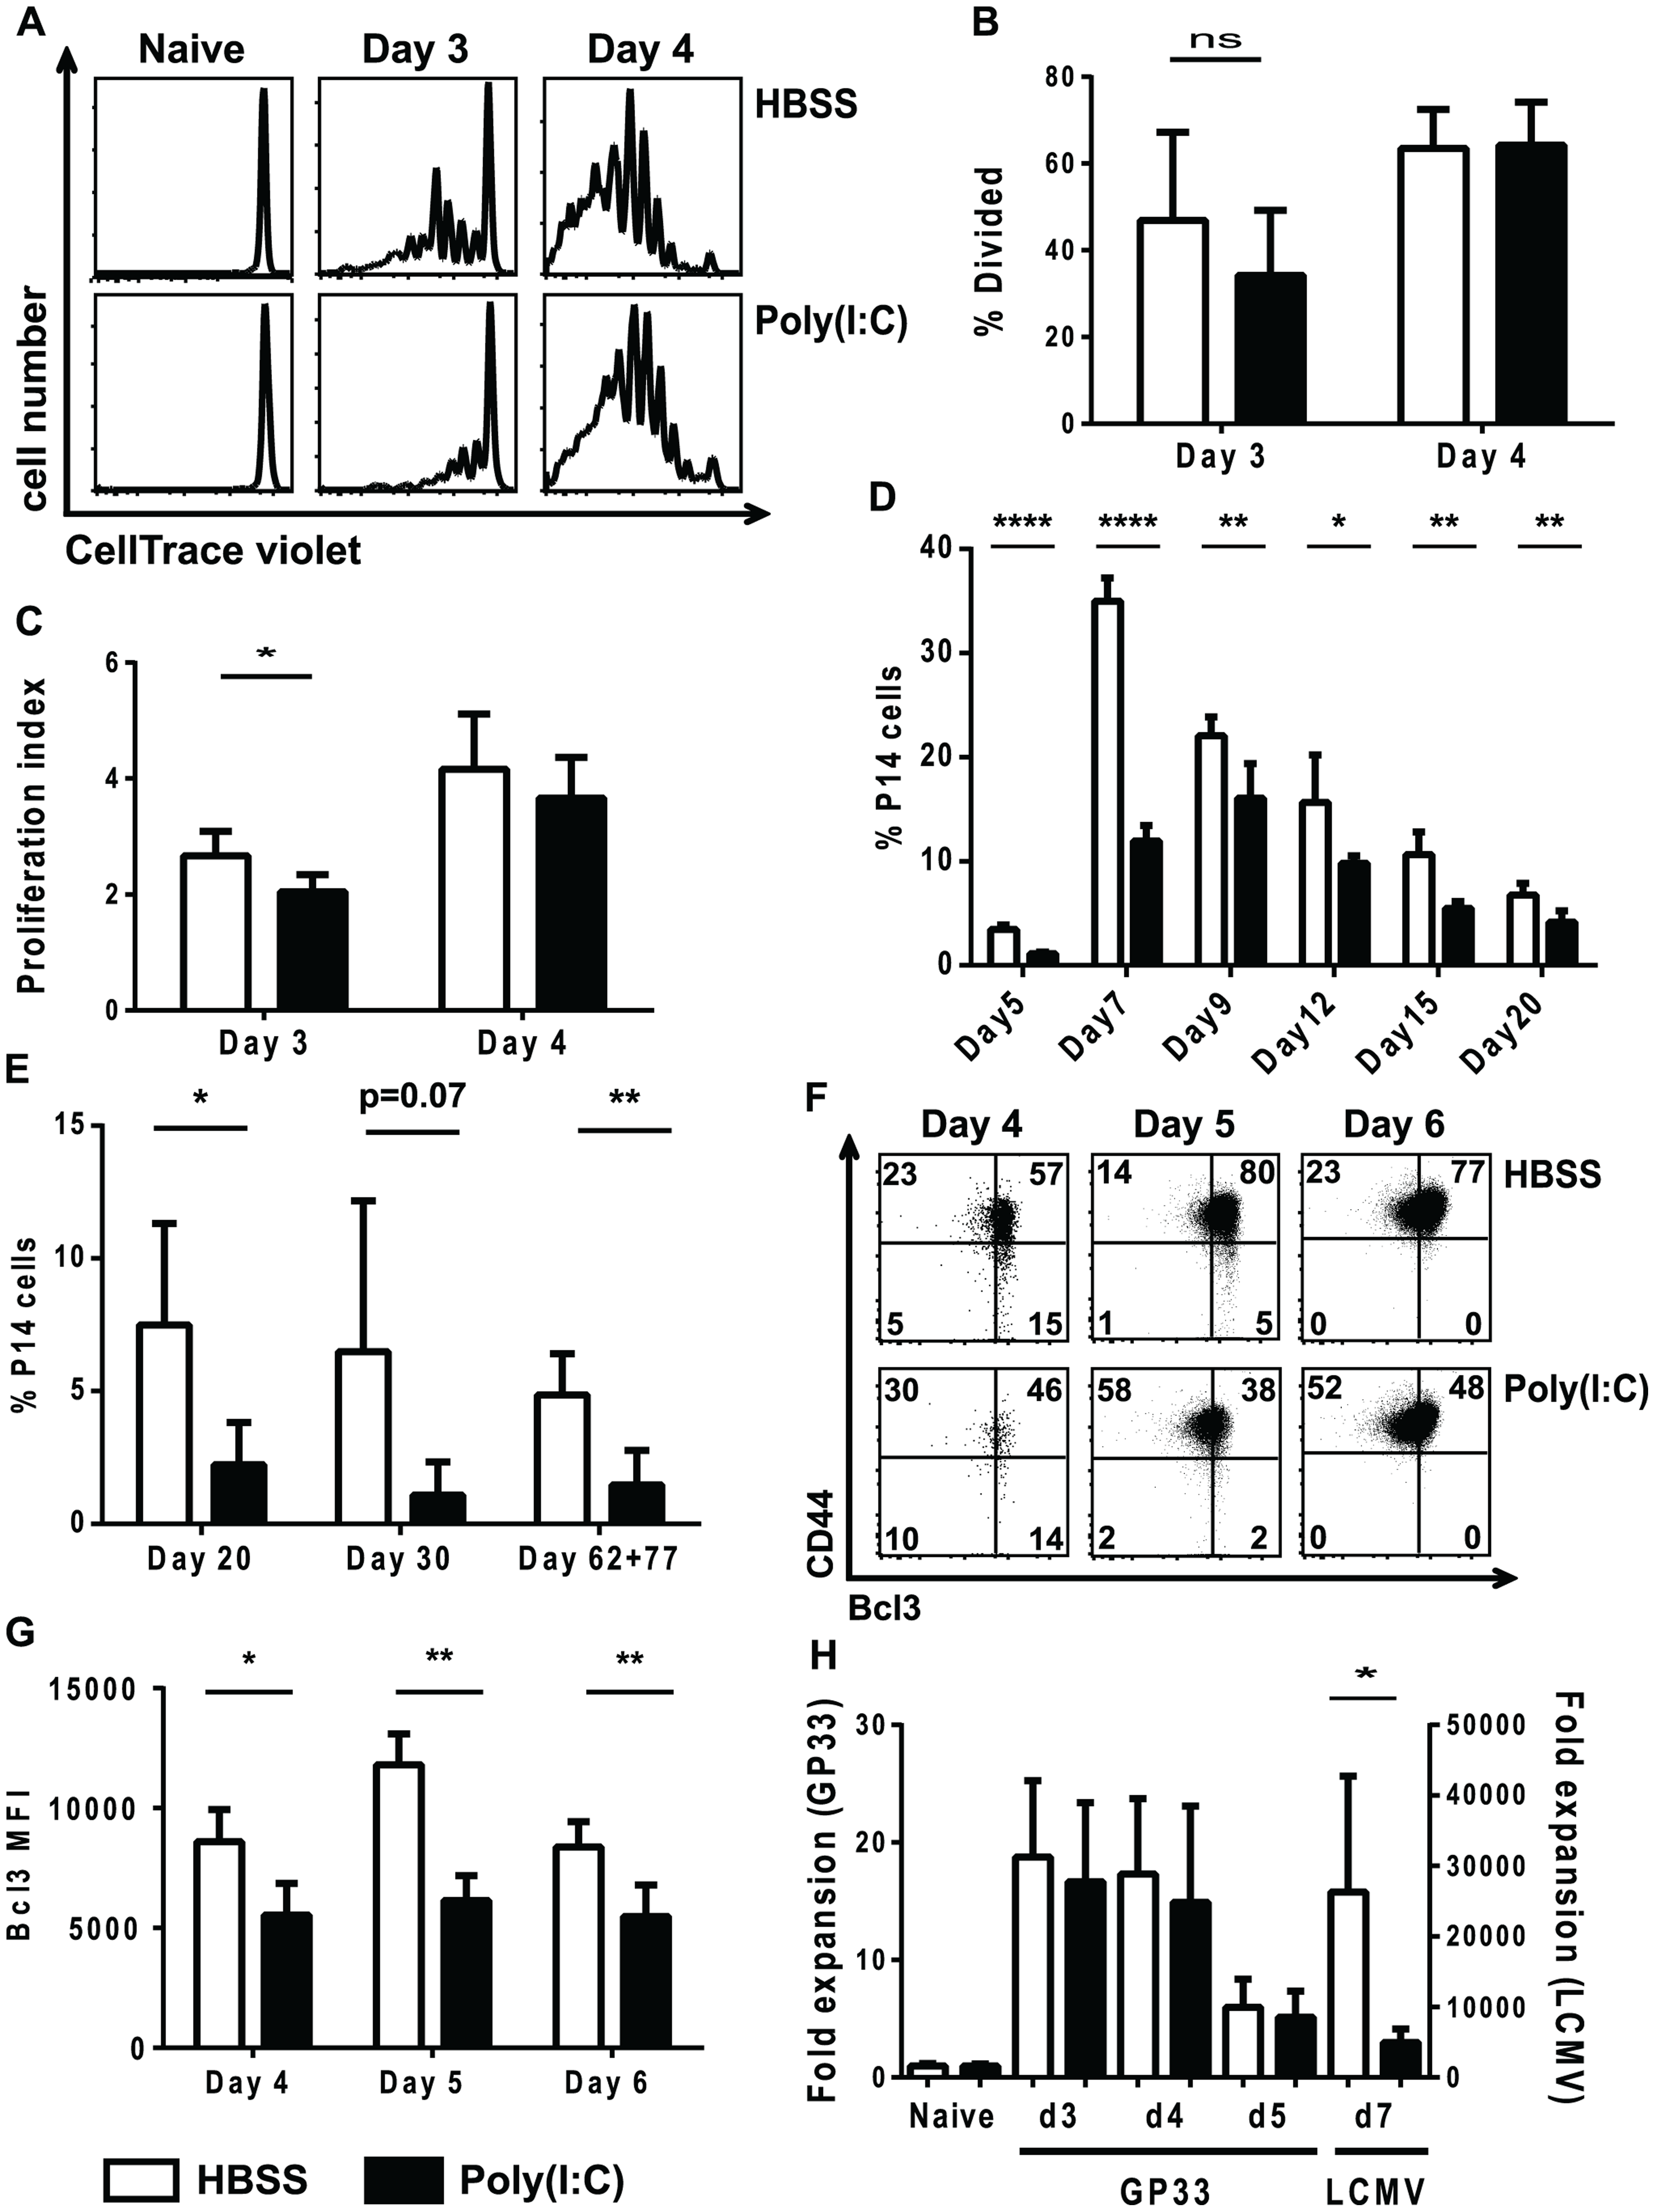 Poly(I∶C)-pretreated P14 CD8 T cells have a delay in division and reduced BCL3 expression.